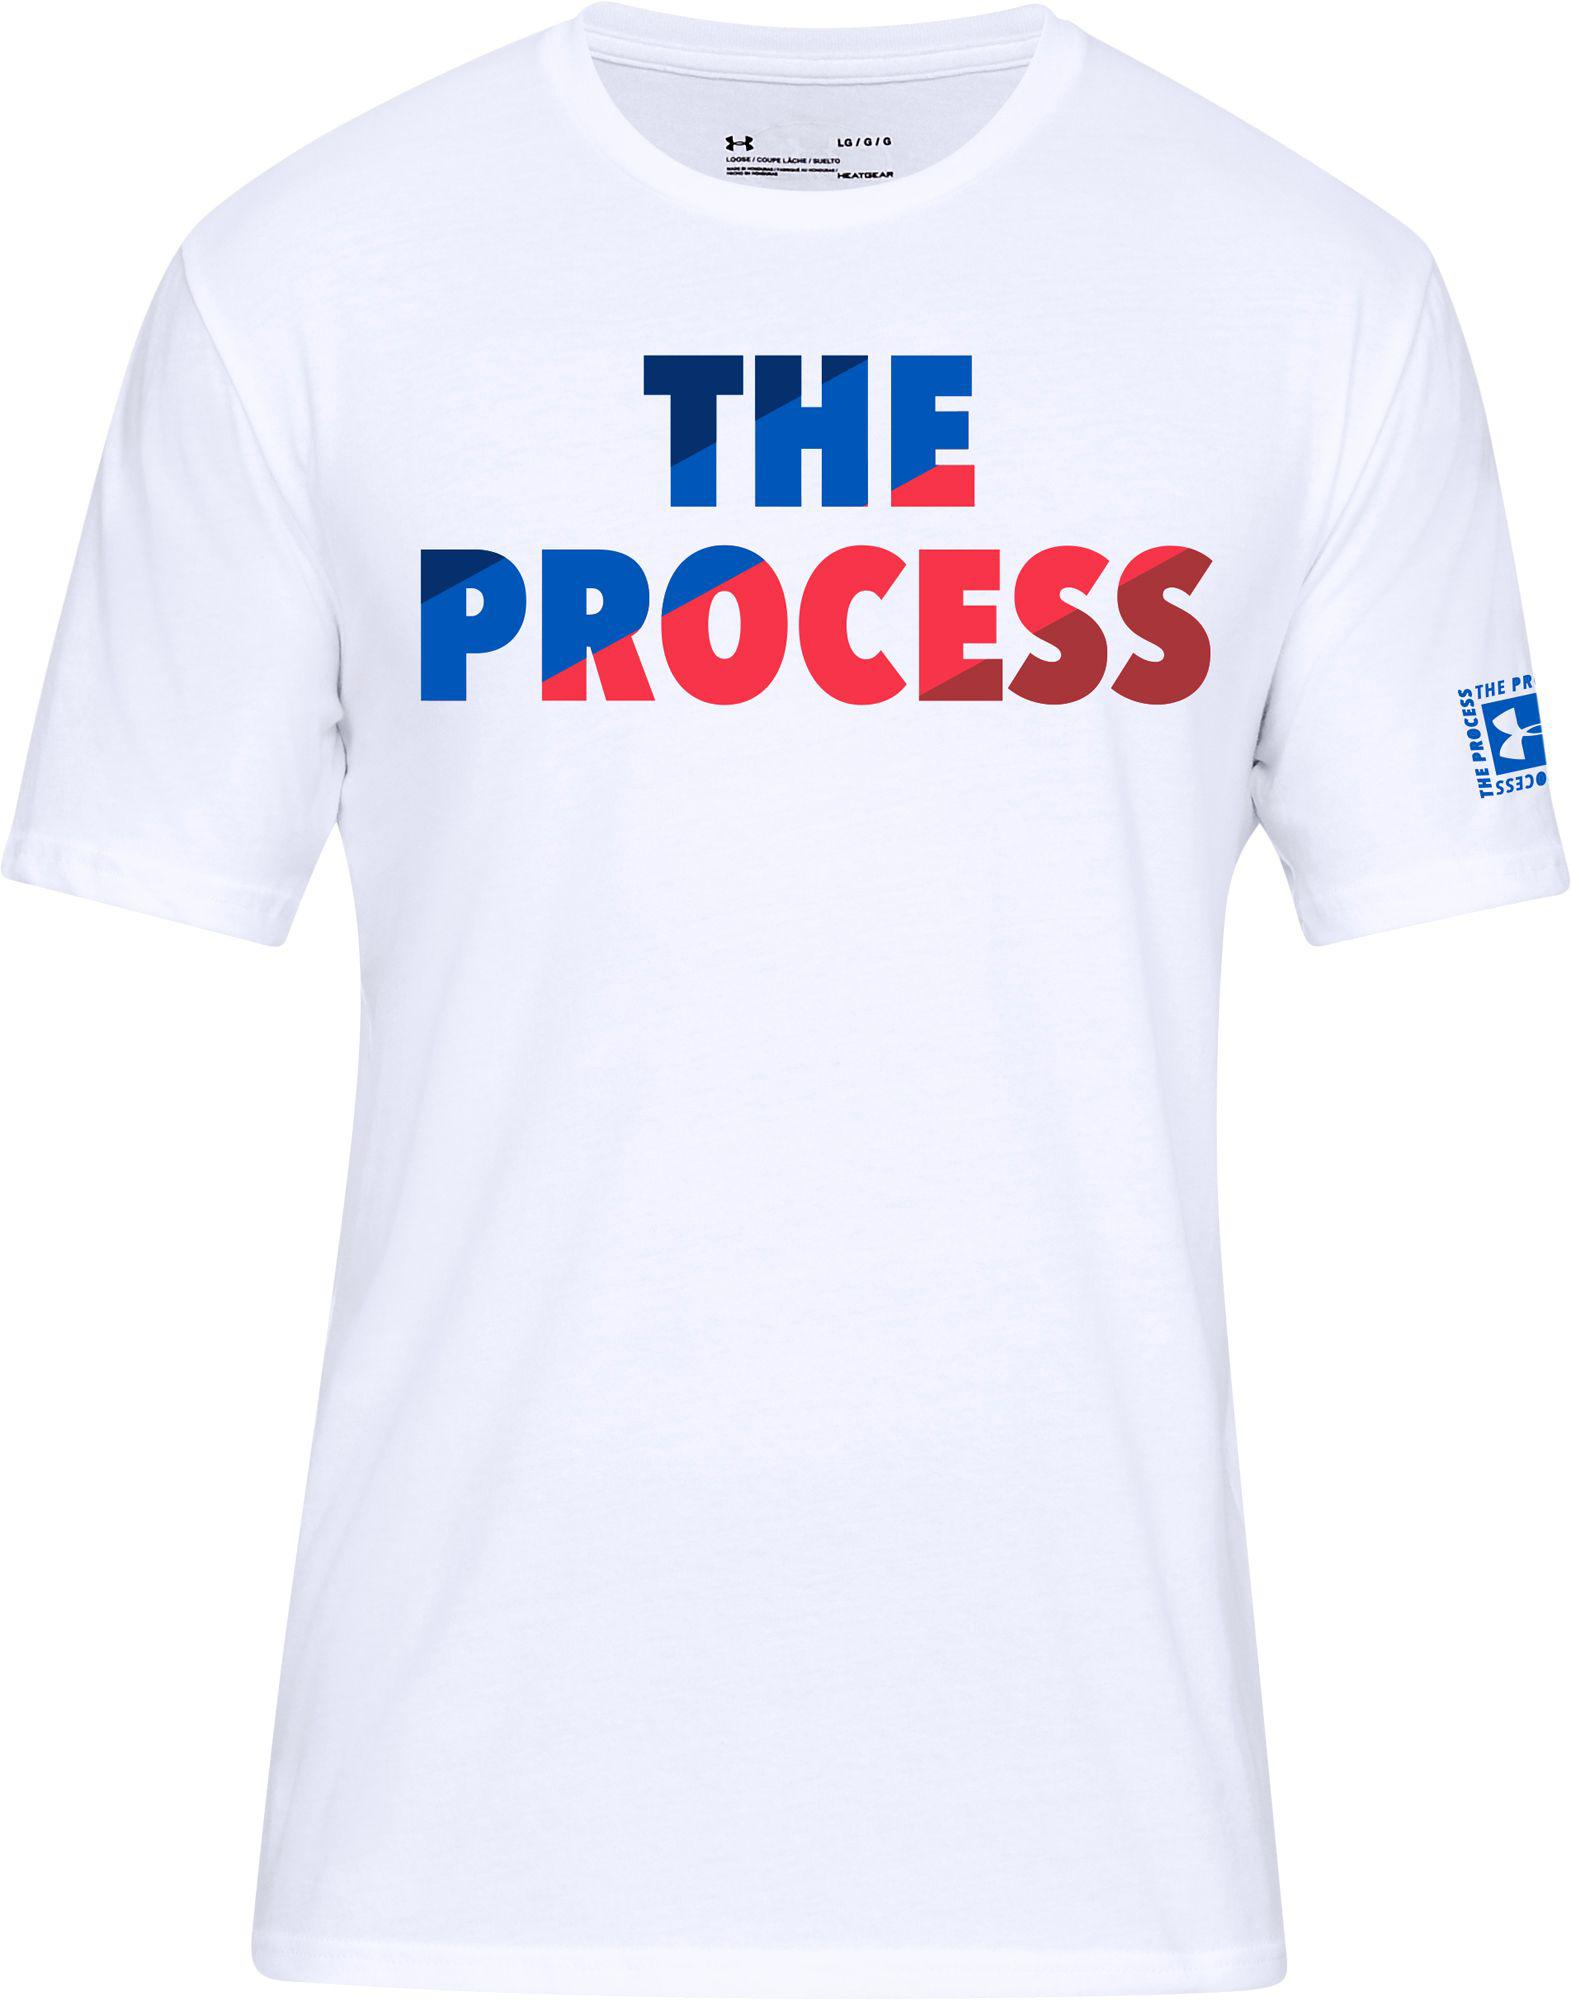 0d34aa4c Under Armour The Process Graphic T-shirt in White for Men - Lyst